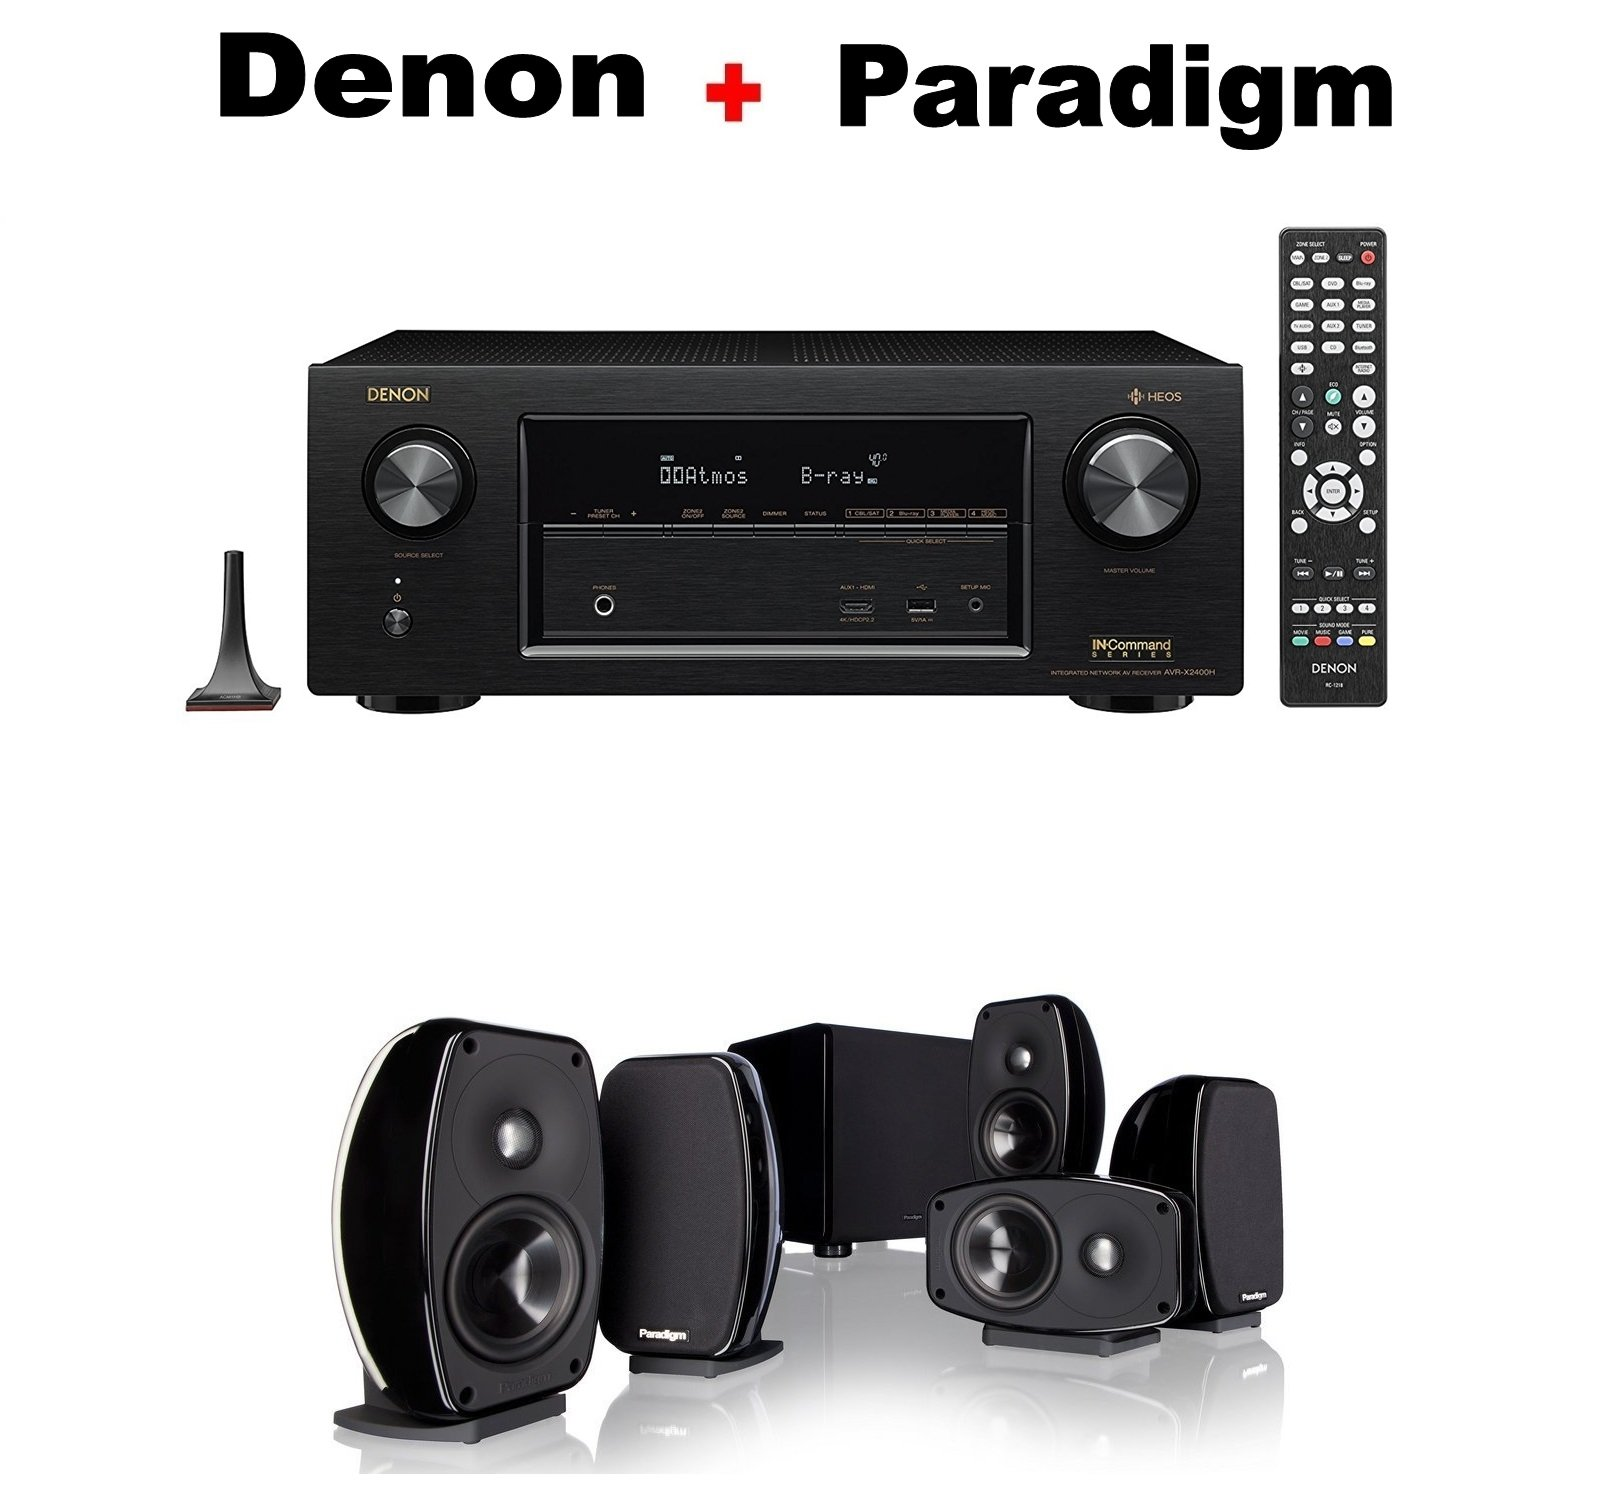 Denon AVR-X3400H 7.2 Channel Full 4K Ultra HD AV Receiver with Wi-Fi, Dolby Atmos, DTS:X, and HEOS + Paradigm Cinema 100 CT 5.1 Home Theater System Bundle by Denon